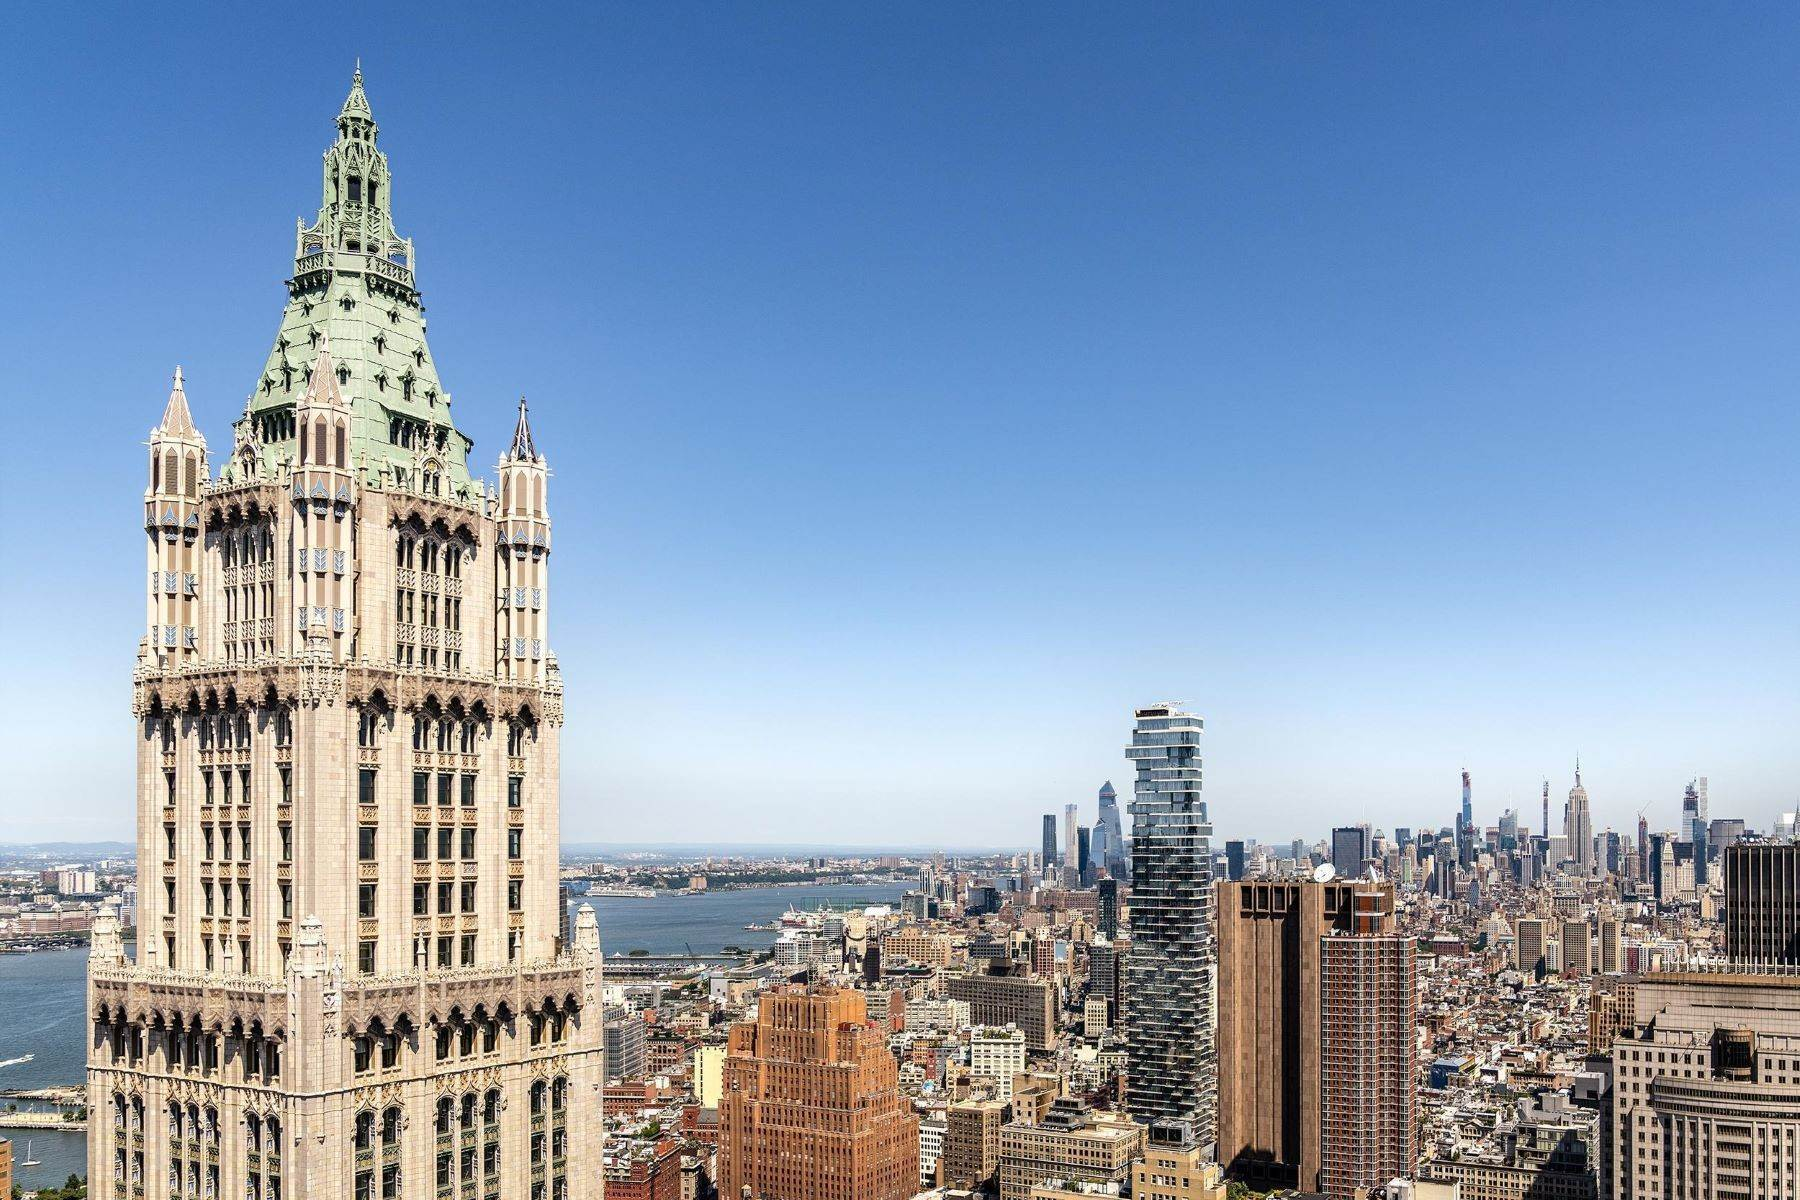 Property vid The Pinnacle Penthouse 2 Park Place, Pinnacle Penthouse New York, New York 10007 Förenta staterna